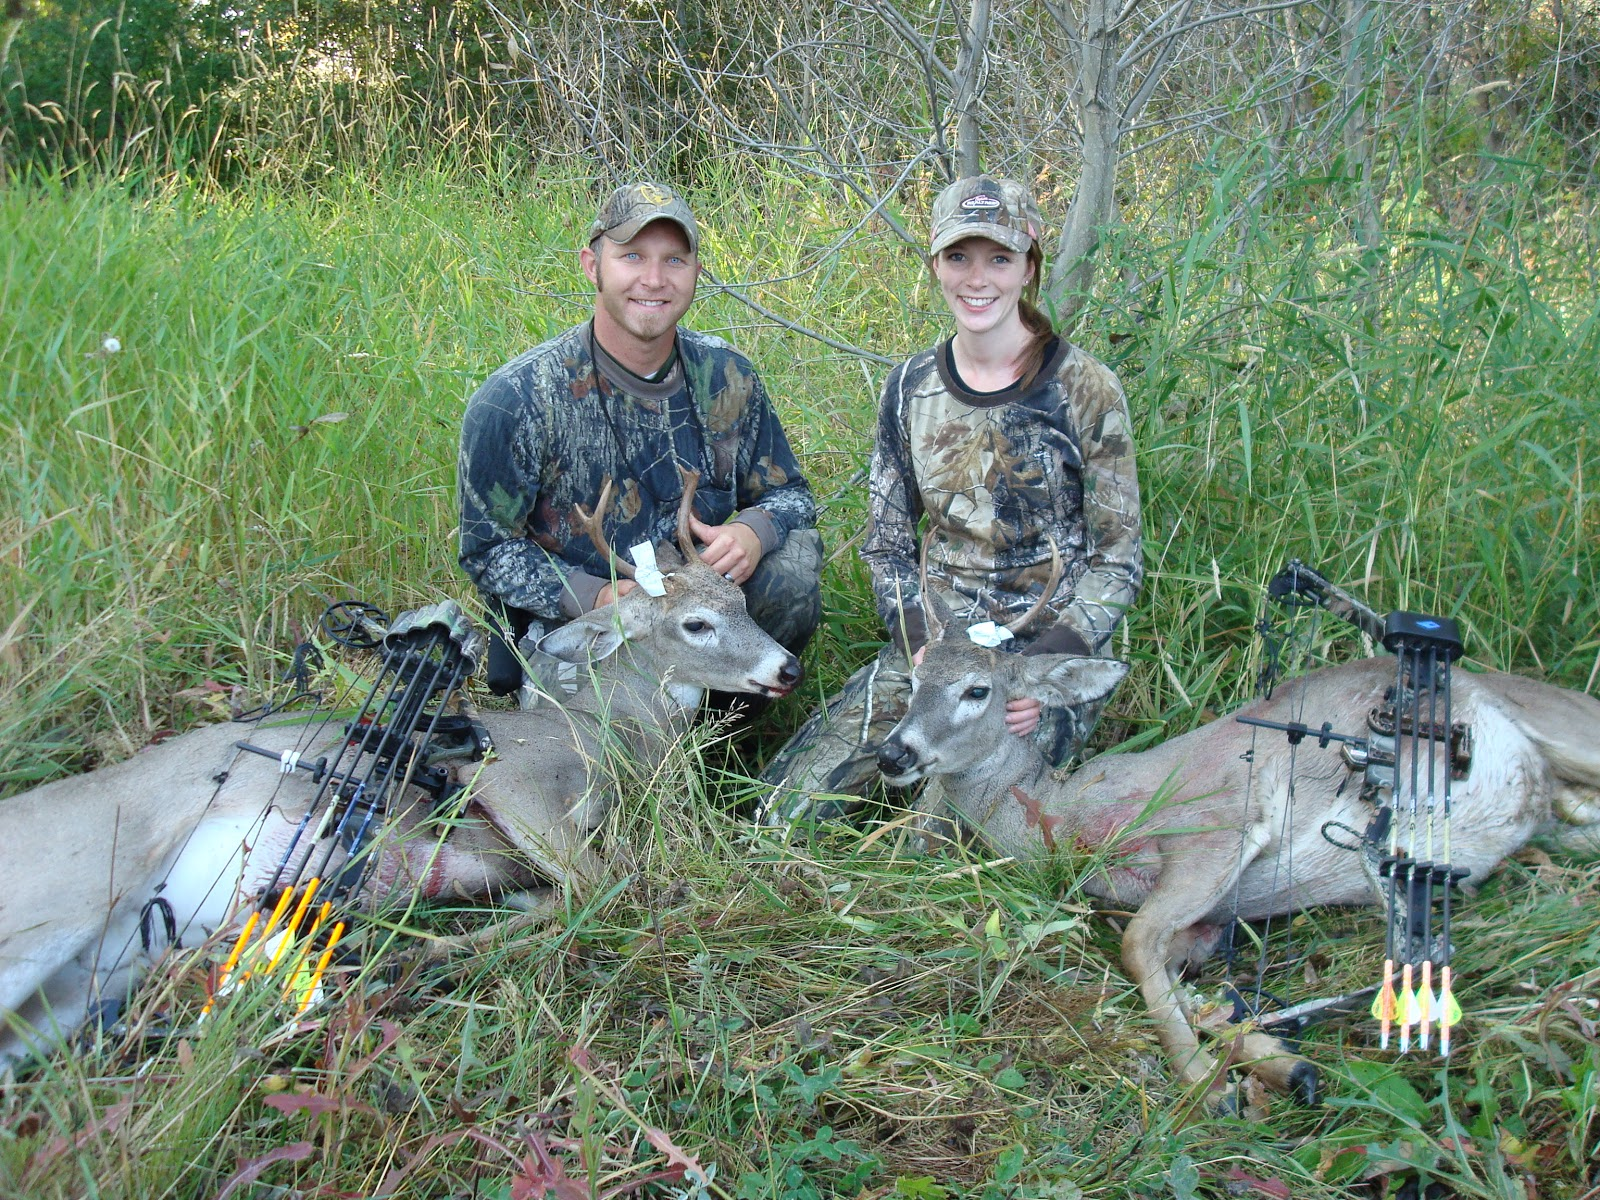 Archery Whitetails in Idaho